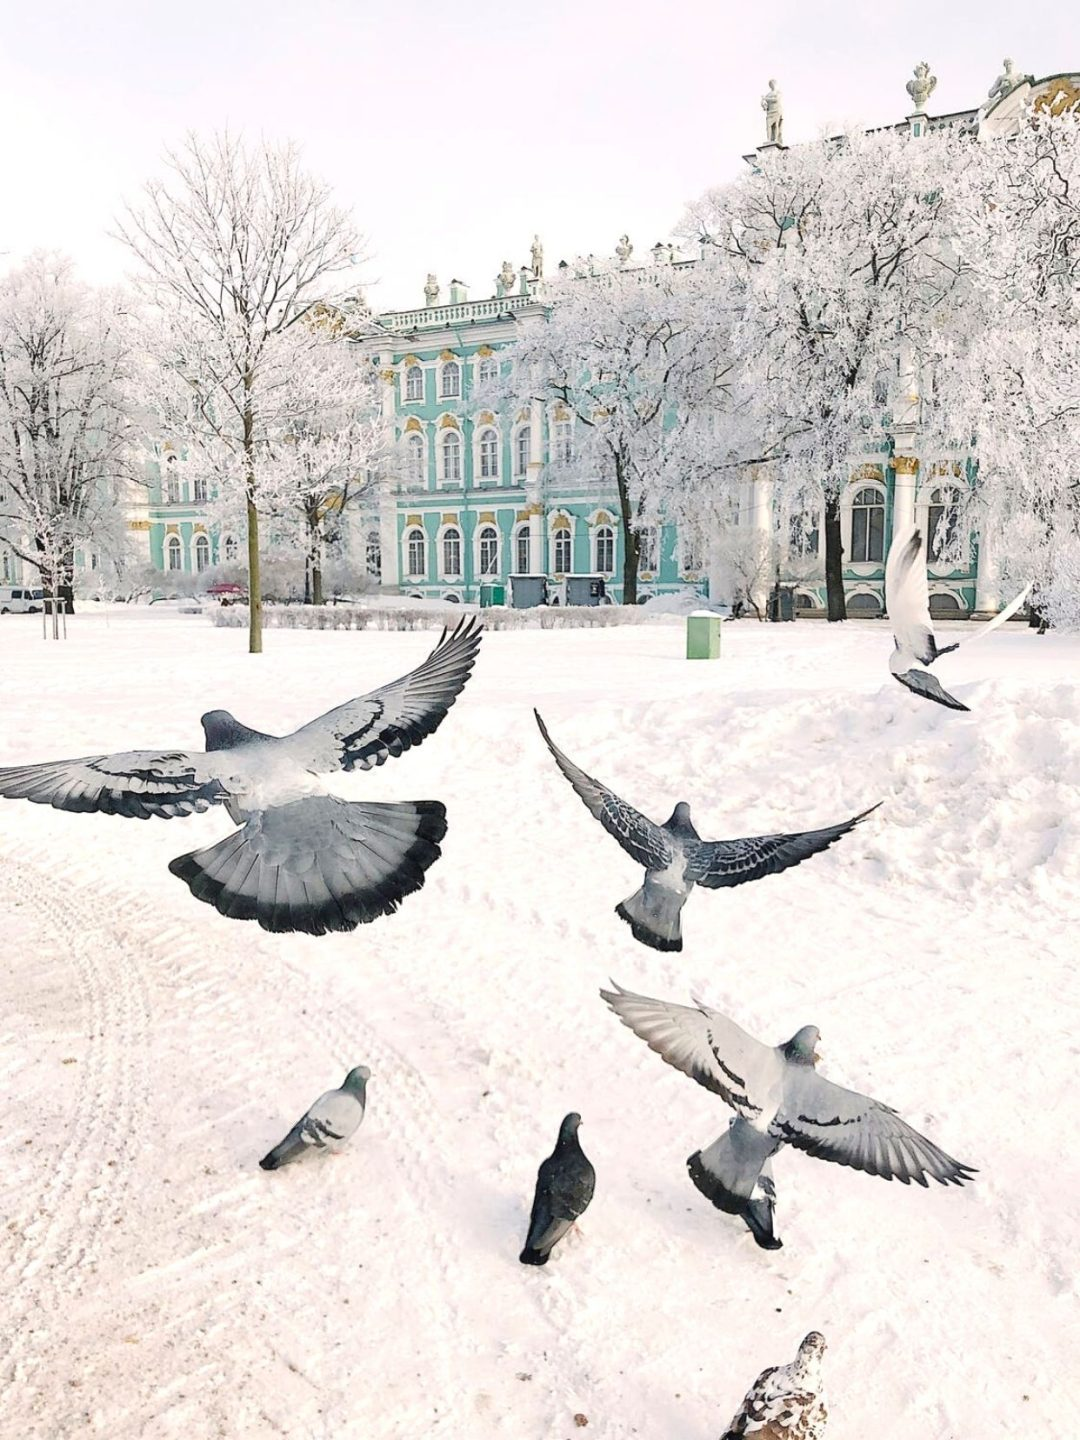 Winter wallpapers for iPhone with birds, snowy city wallpaper - Ermitage wallpaper